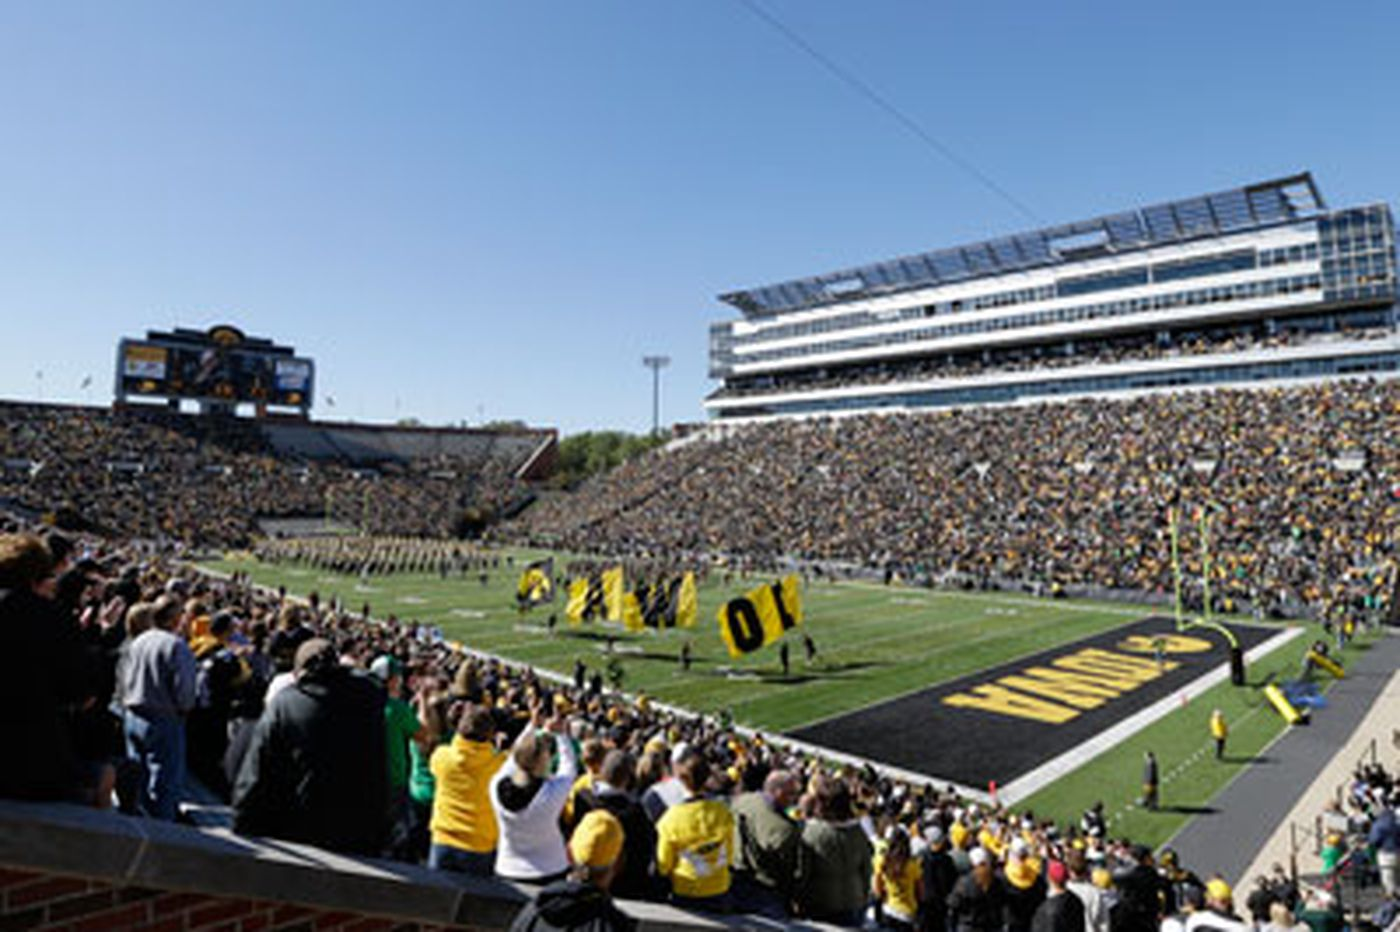 To Penn State, Iowa's Kinnick Stadium isn't the Big Ten's biggest, but it may be the loudest